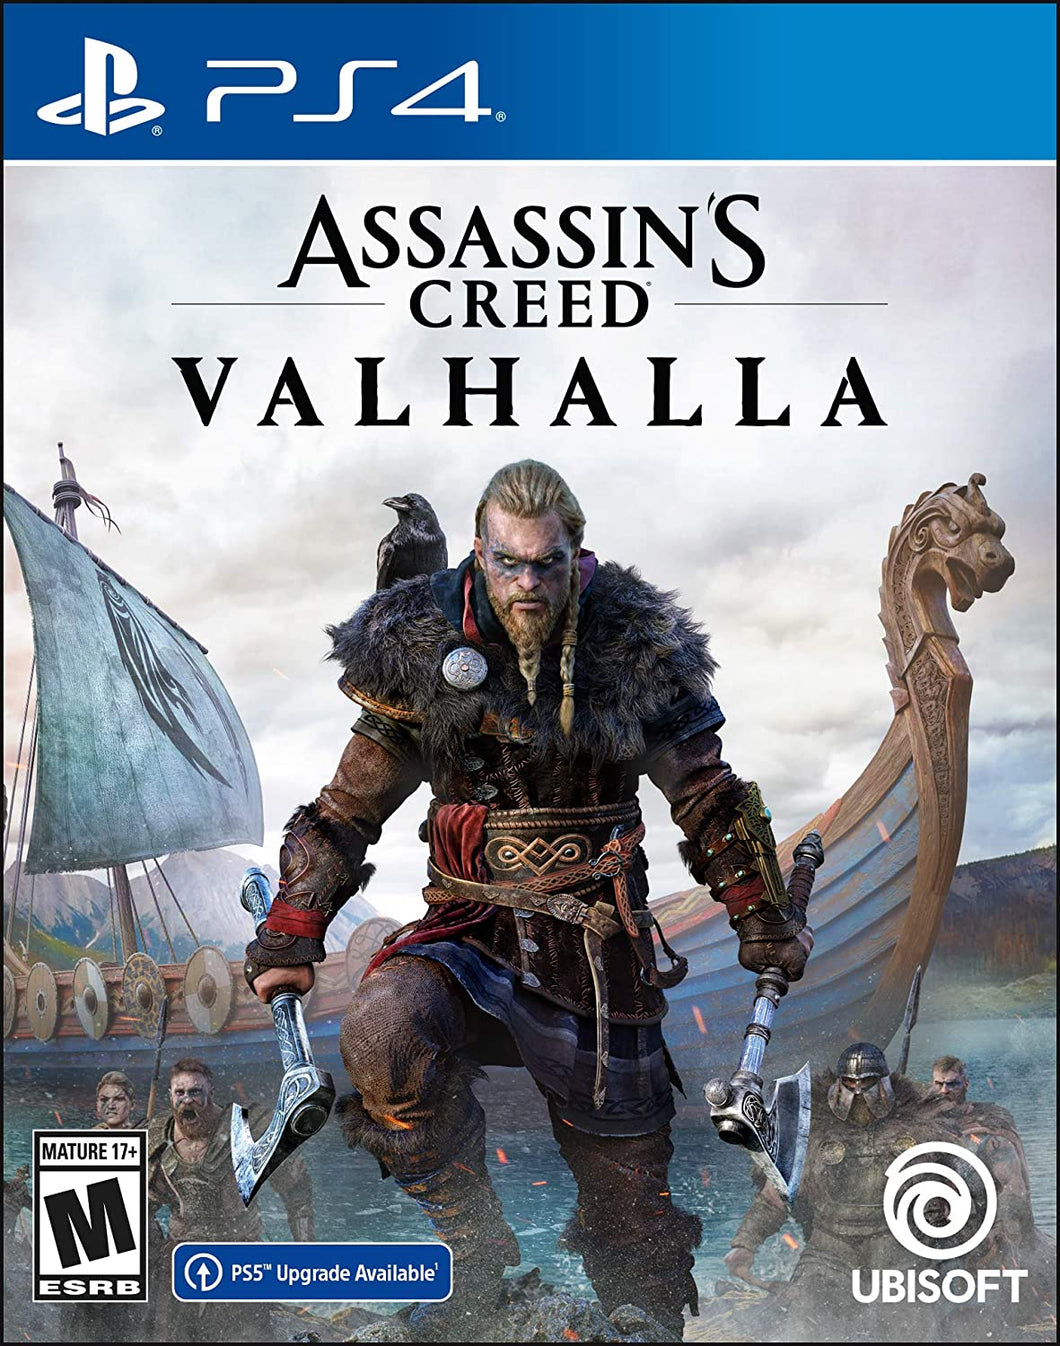 Assassin's Creed Valhalla PlayStation 4